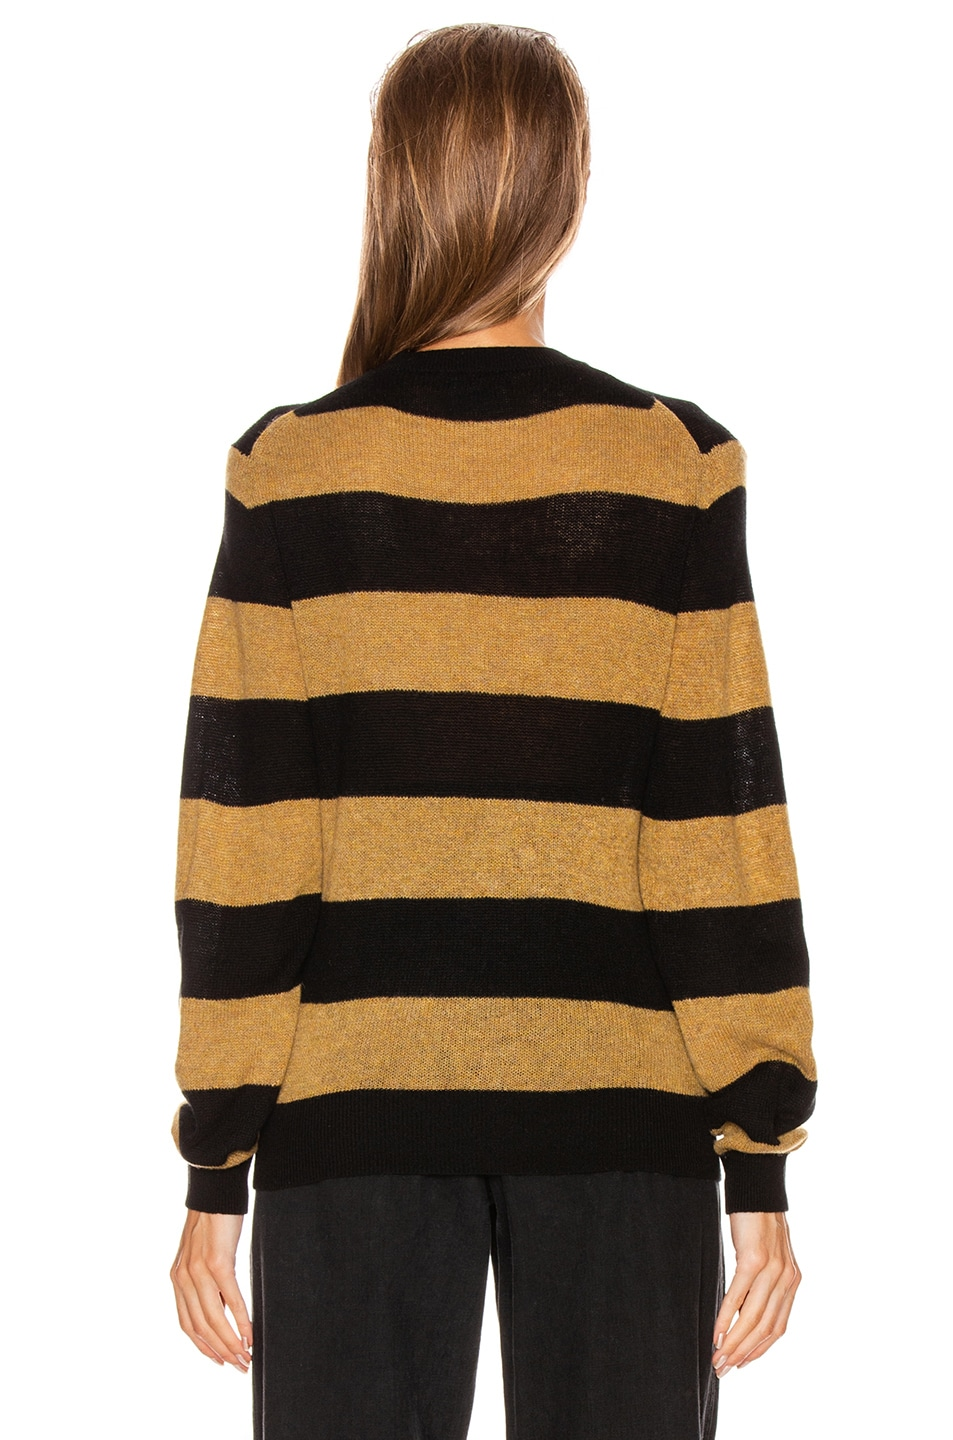 Image 3 of KHAITE Viola Crewneck Pullover Sweater in Black & Fawn Stripe